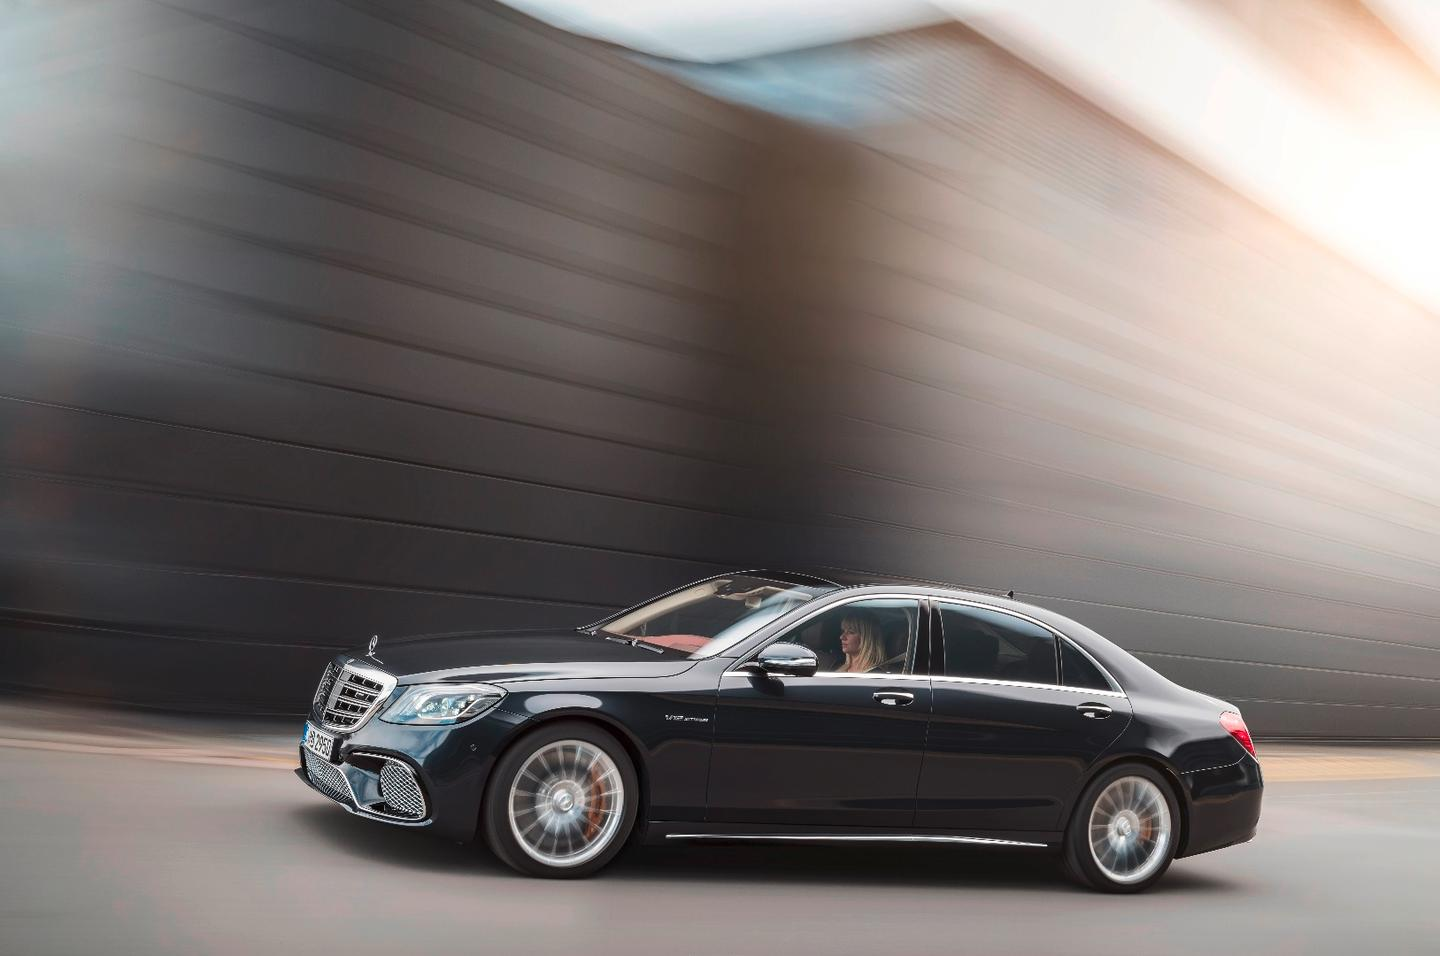 The new S-Class will launch with four engine options